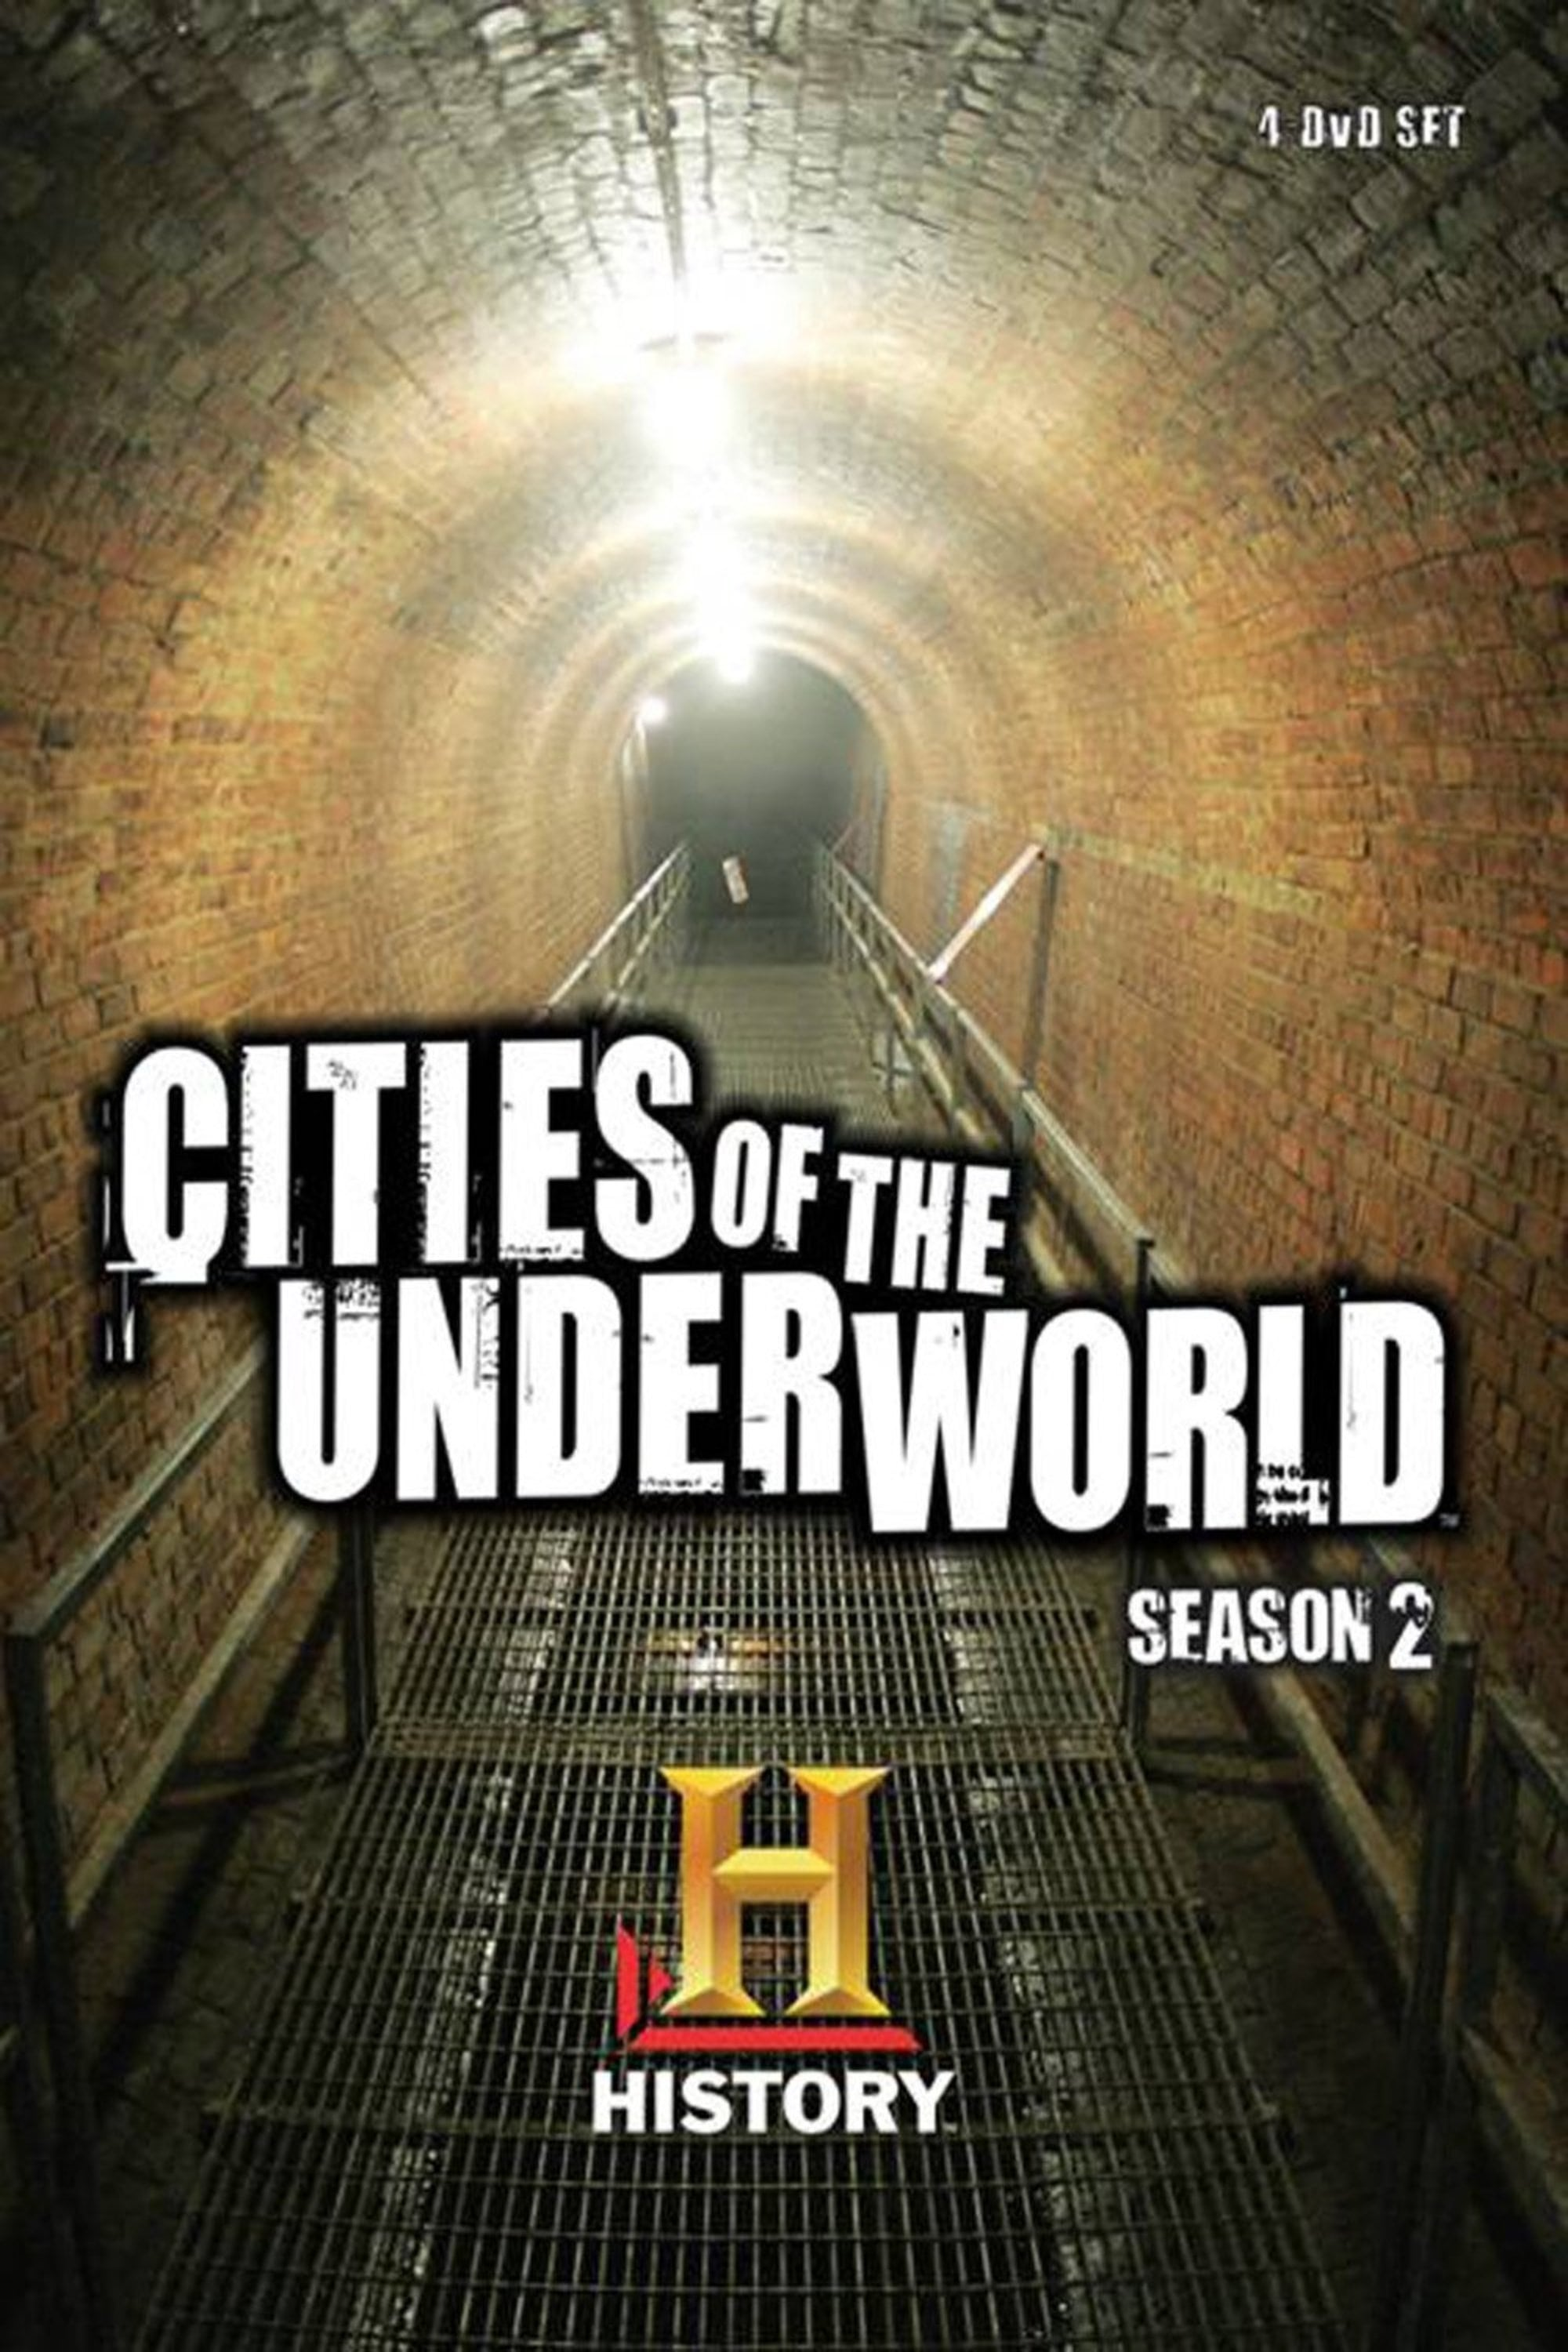 Cities of the Underworld